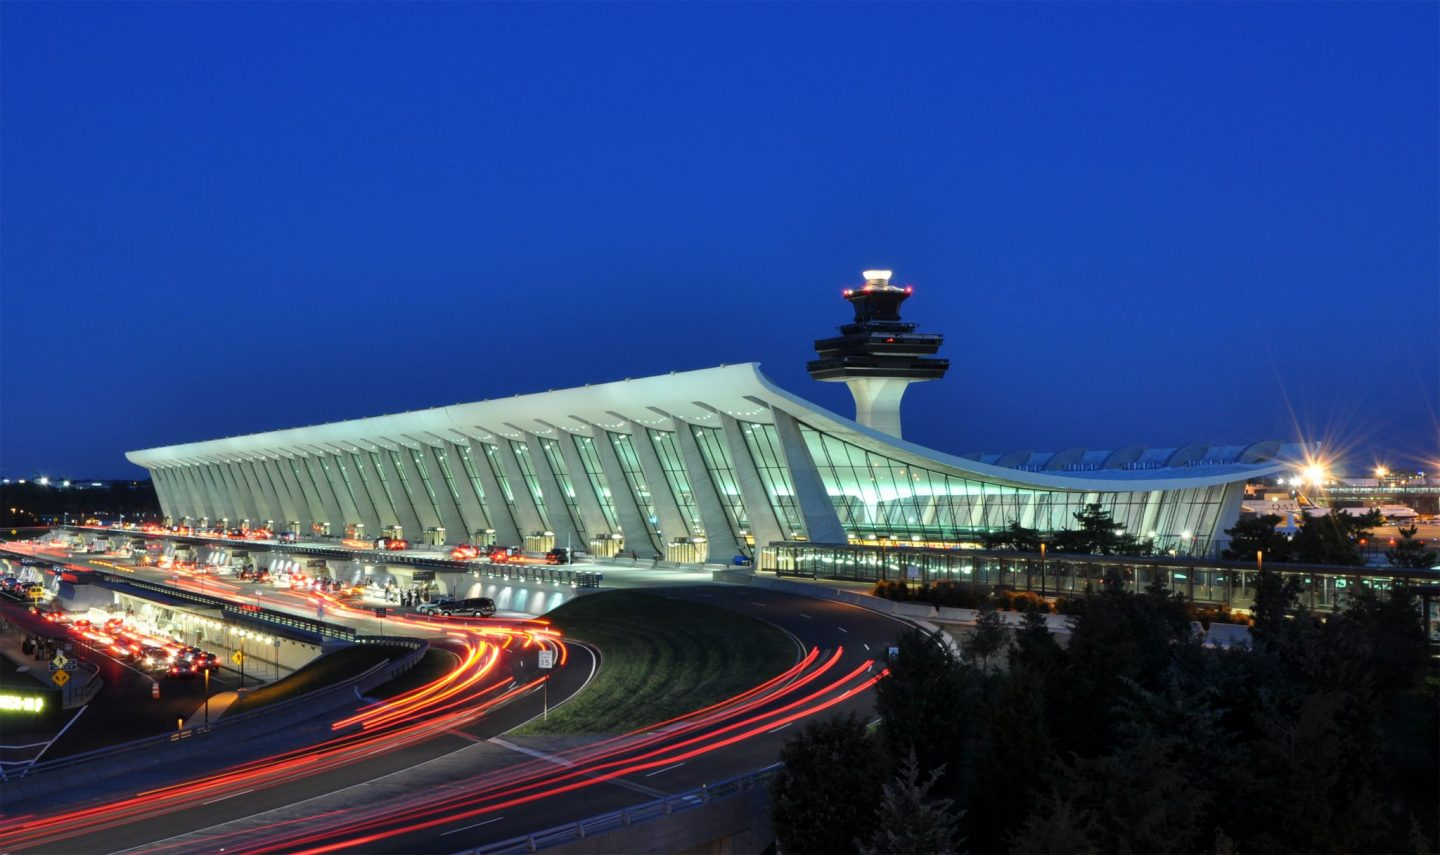 Washington Dulles International Airport at Dusk 1440x855 - Take The Stress Out Of Airport Travel With These 3 Handy Tips